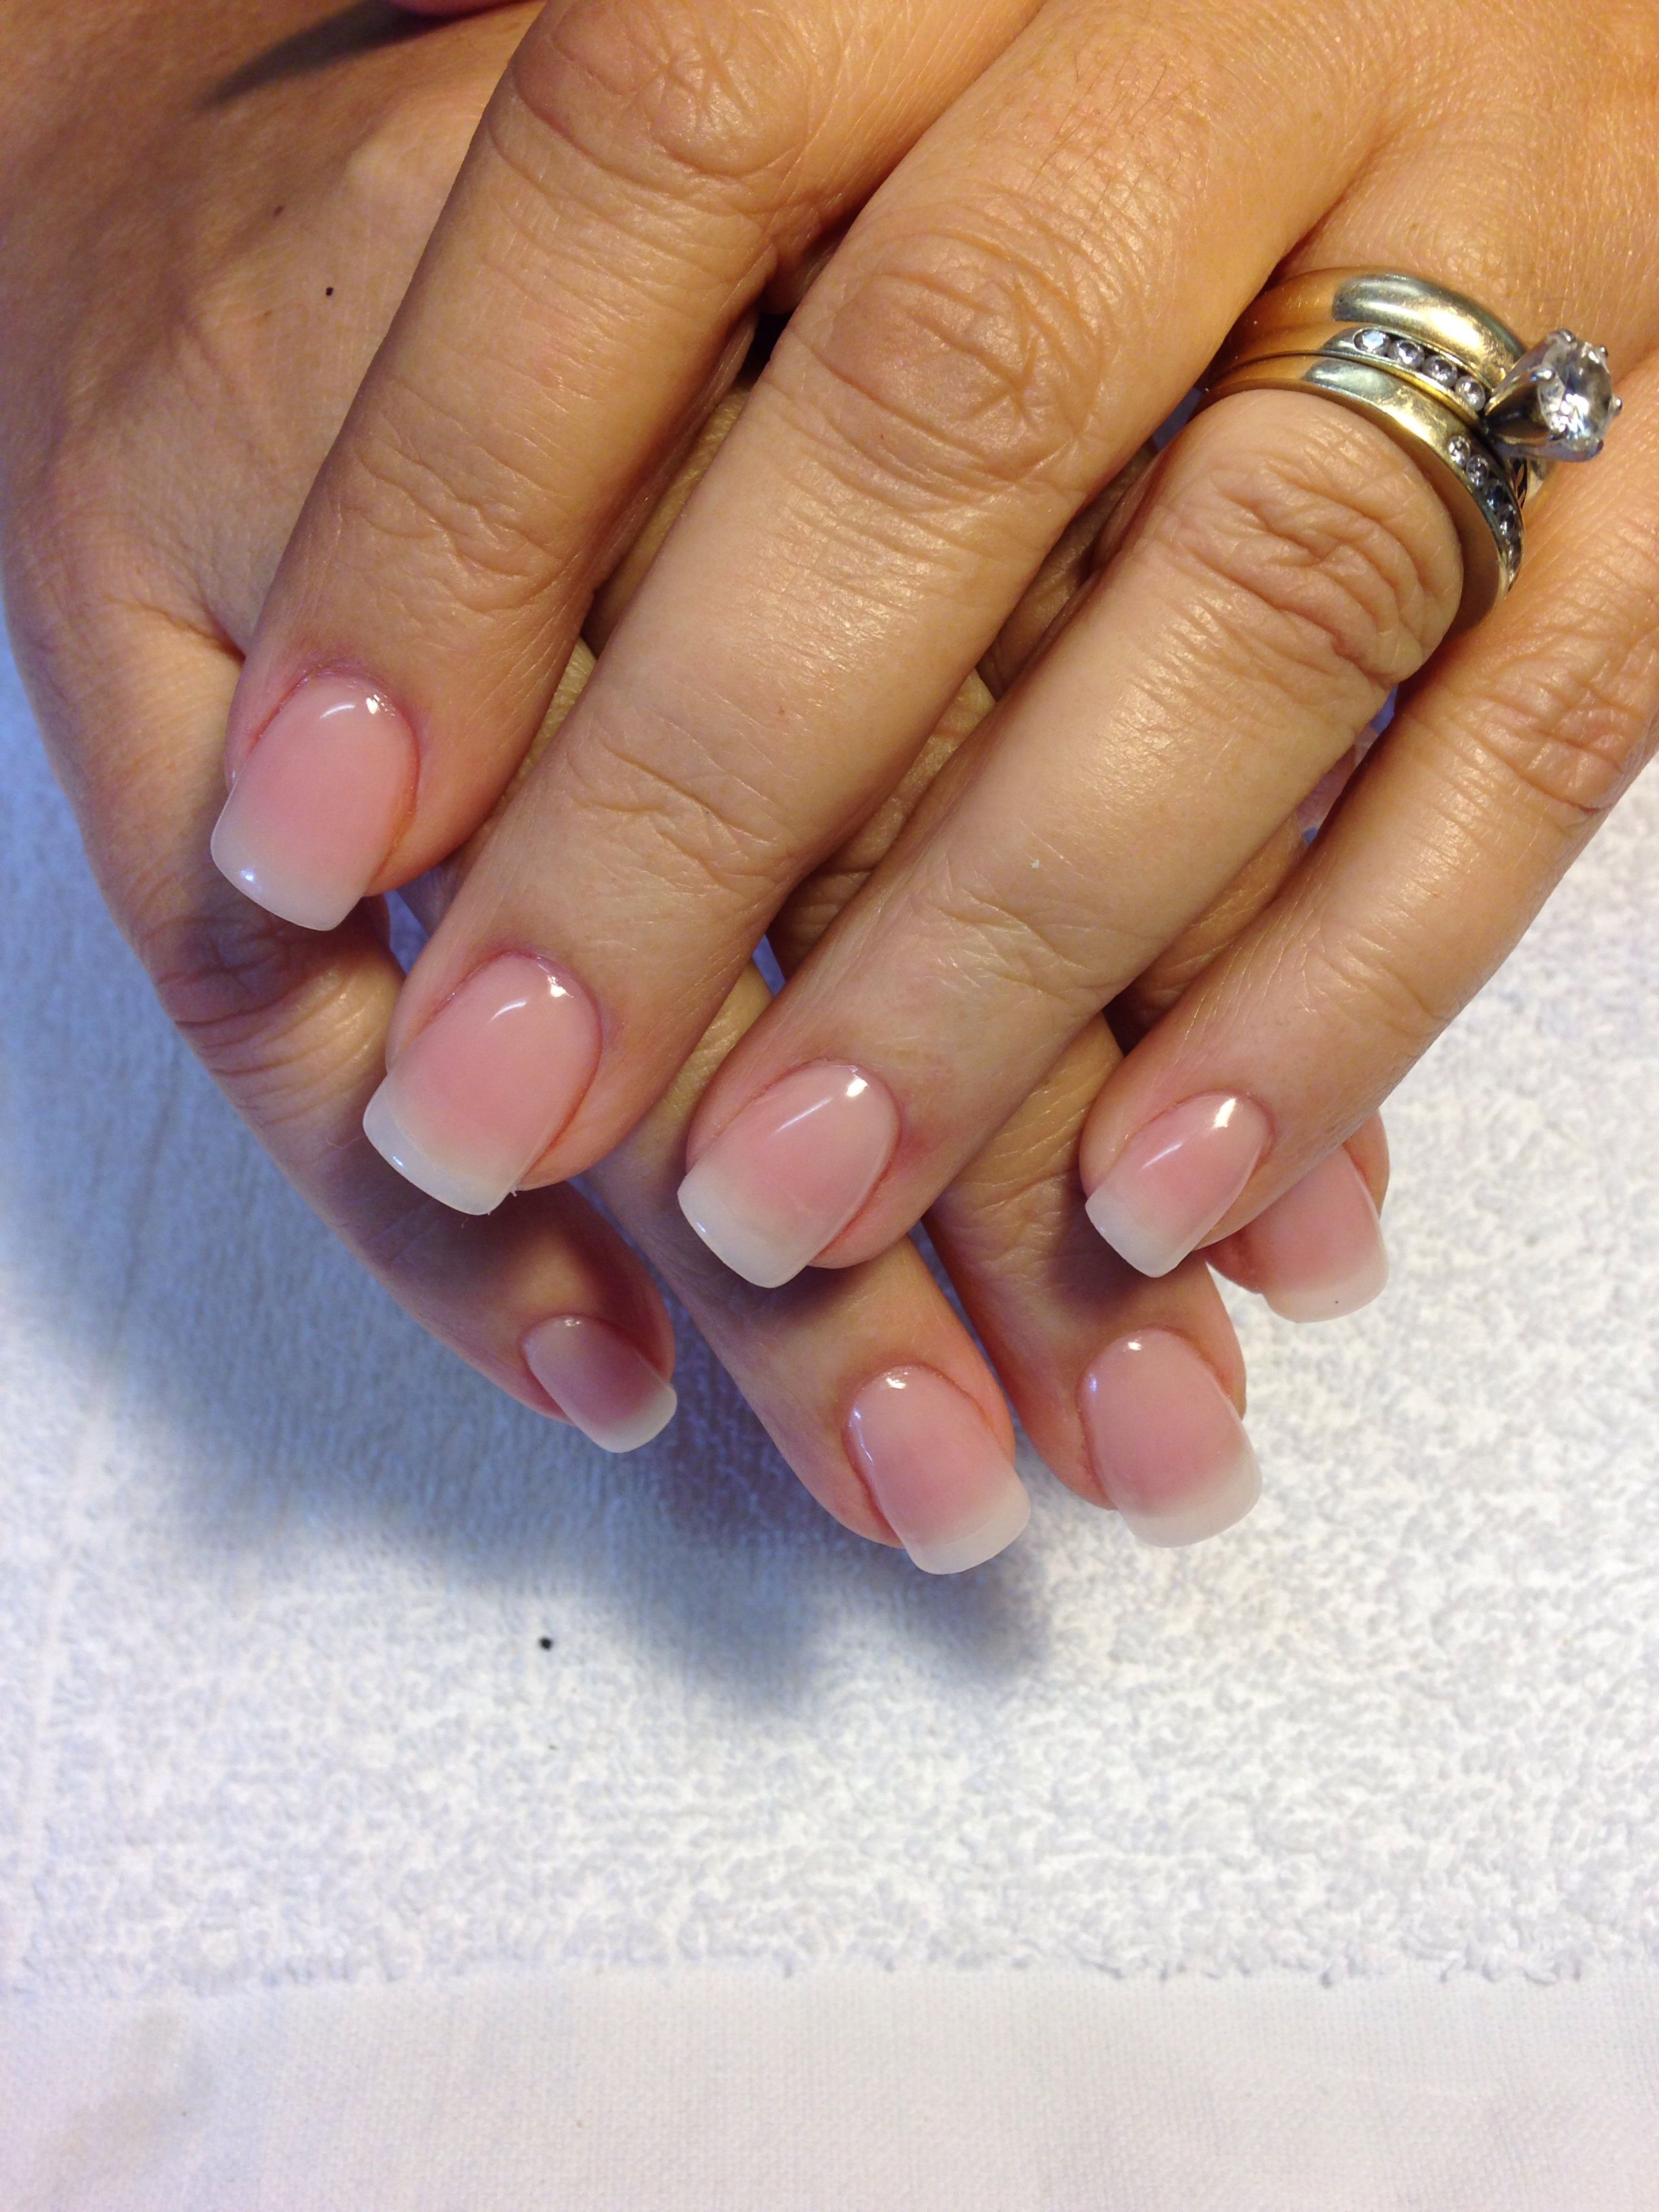 Acrylic But Looking Natural Classy Acrylic Nails Natural Looking Acrylic Nails Natural Acrylic Nails